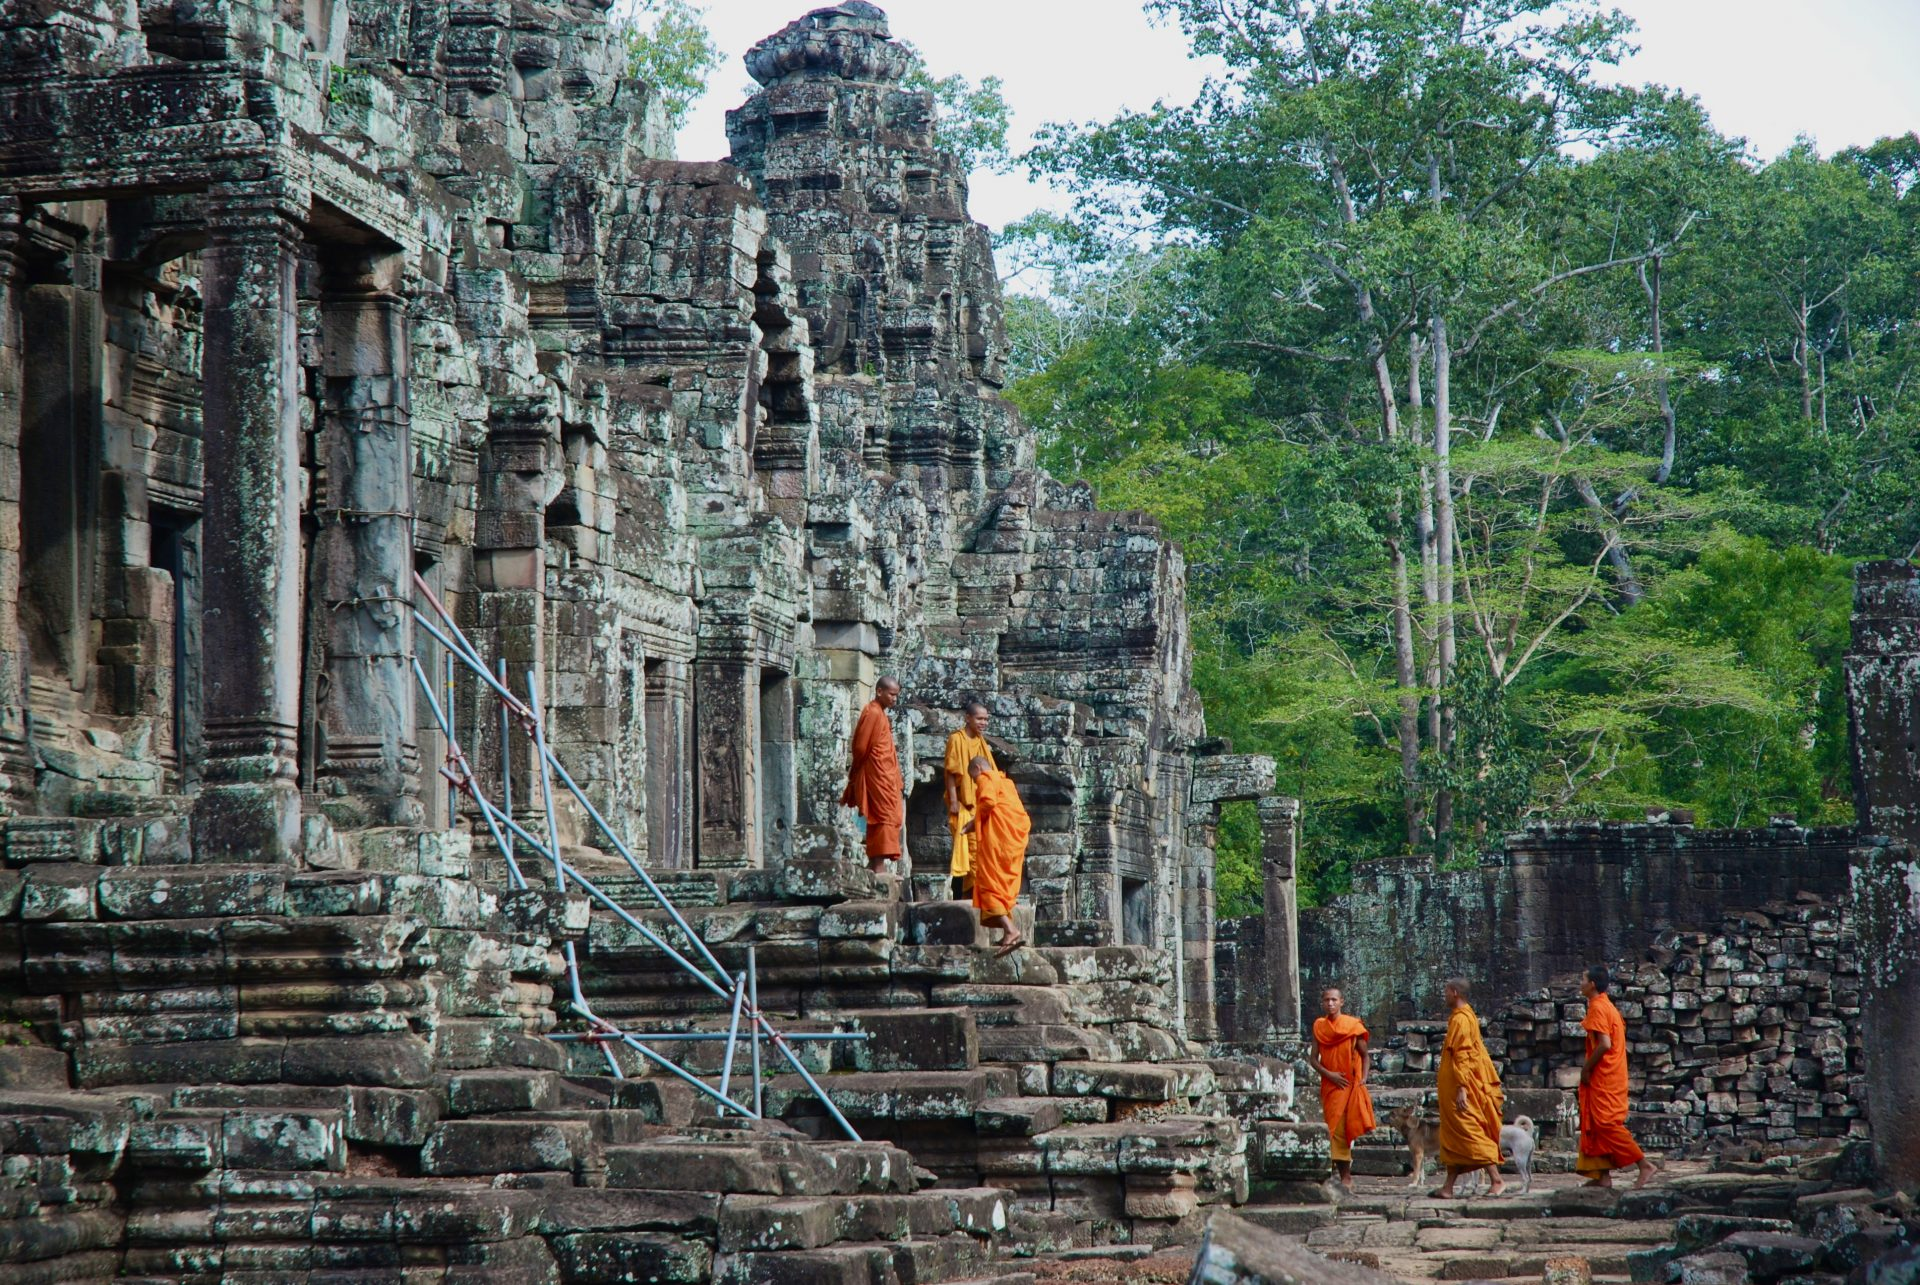 Cambodge - Angkor - Moines Bouddhistes Temple